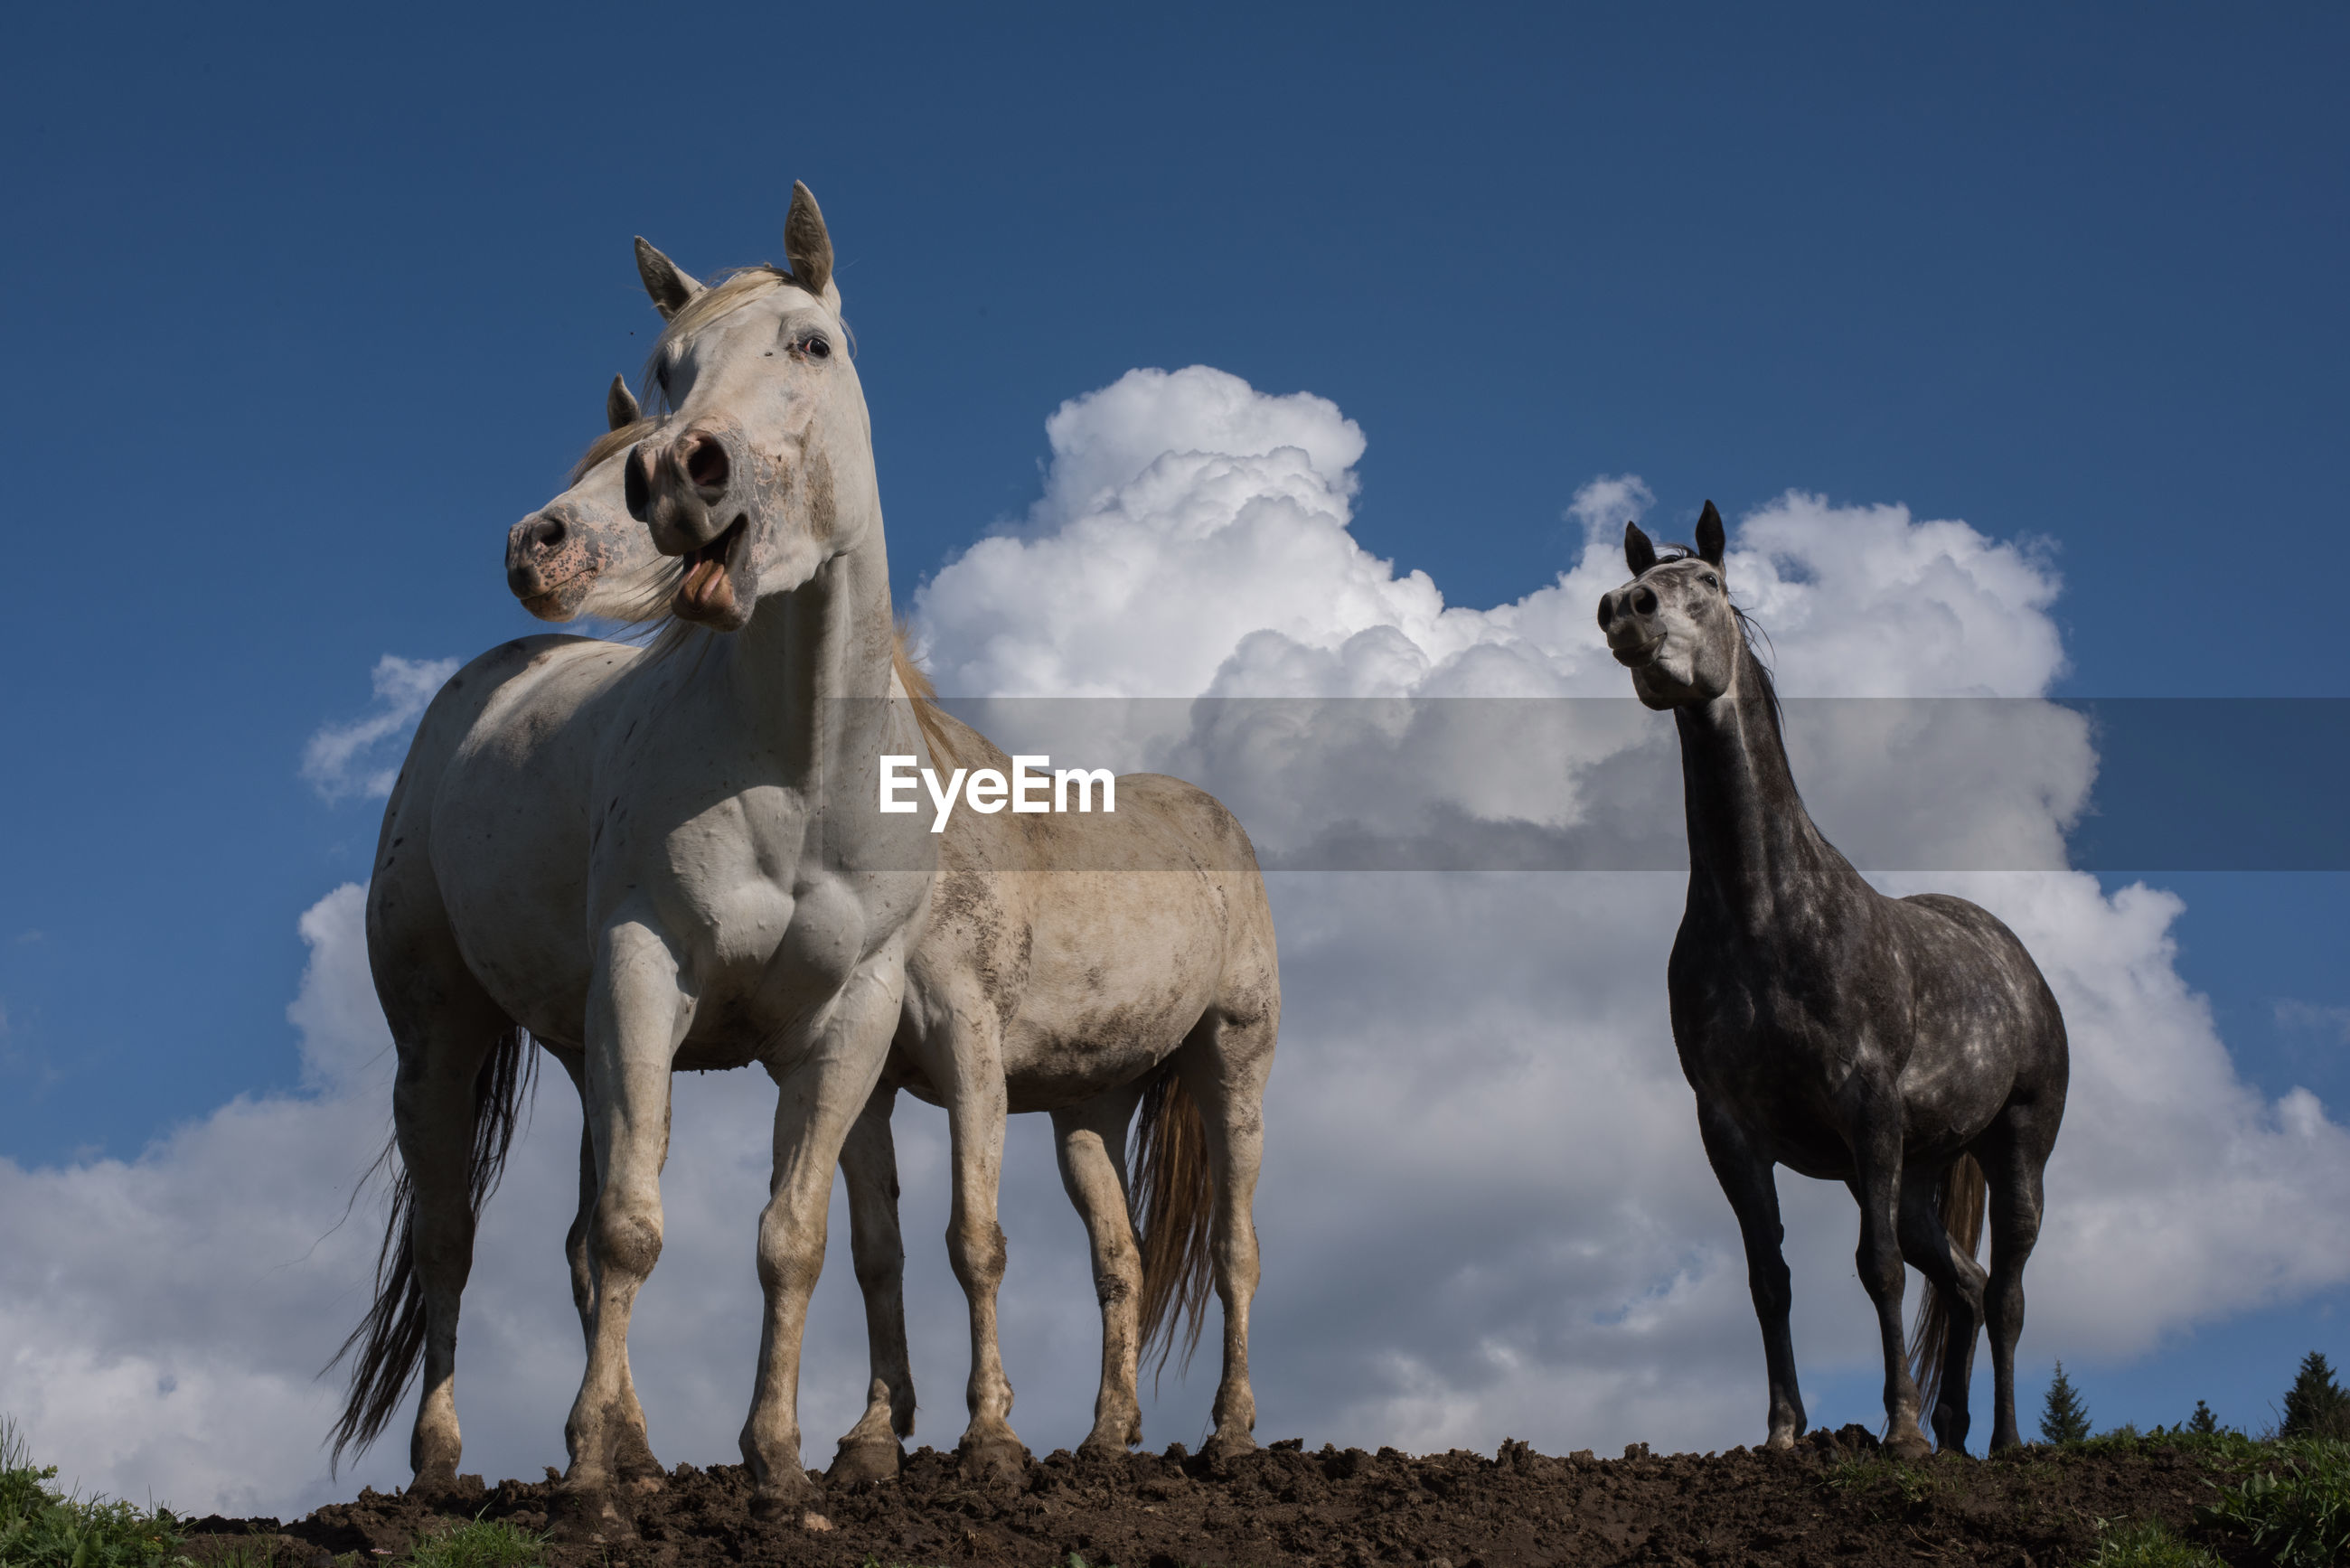 LOW ANGLE VIEW OF HORSE ON FIELD